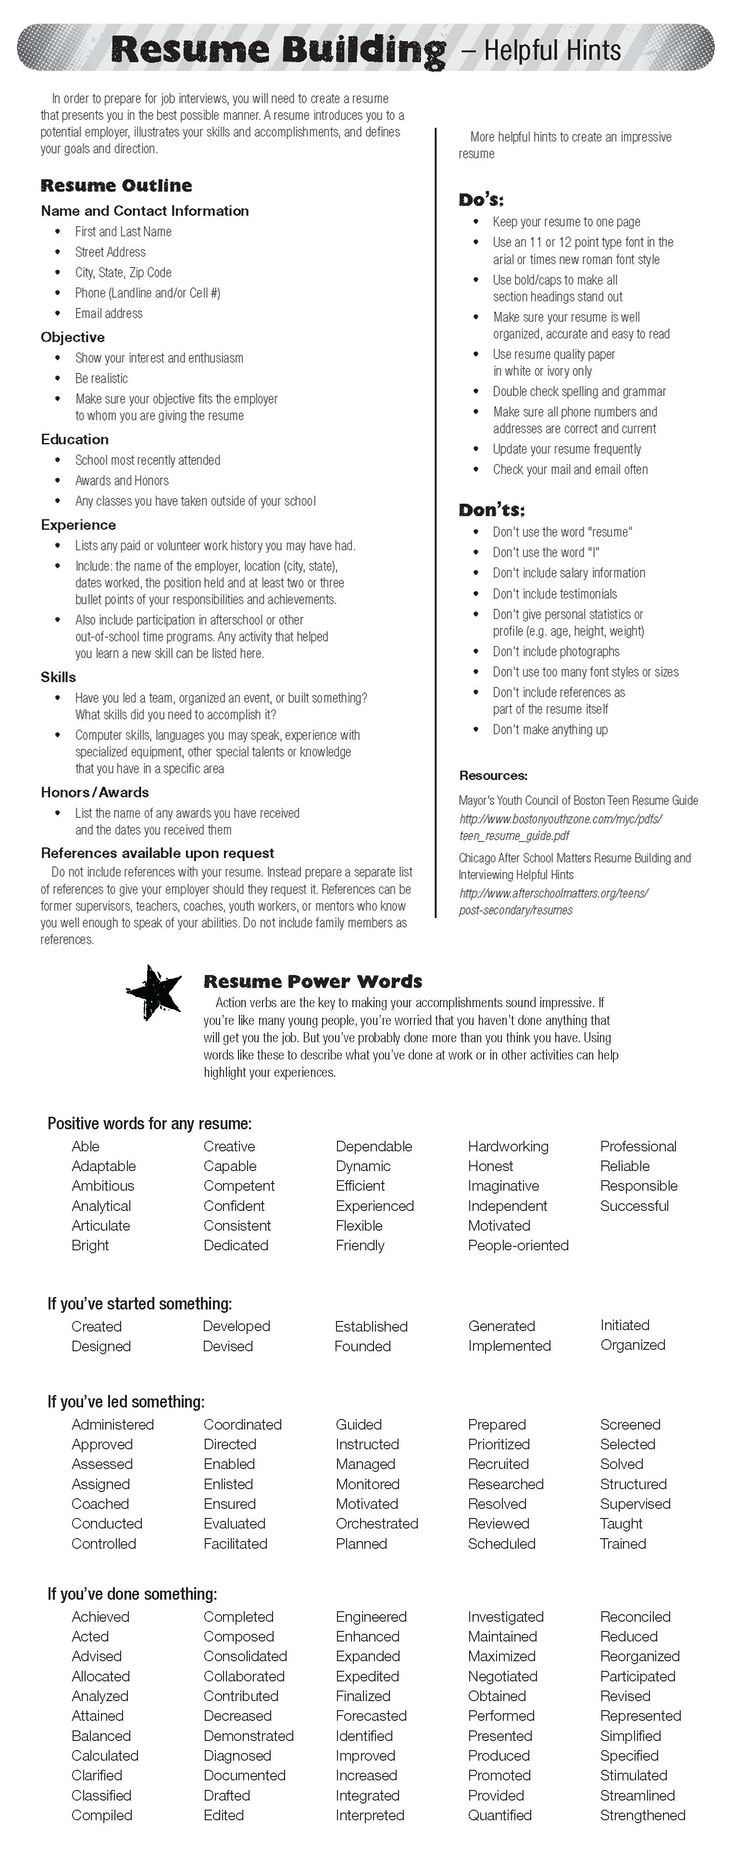 Opposenewapstandardsus  Pretty  Ideas About Resume On Pinterest  Cv Format Resume Cv And  With Foxy  Ideas About Resume On Pinterest  Cv Format Resume Cv And Resume Templates With Cool Make A Resume On Word Also Nurse Practitioner Resume Sample In Addition Creative Resumes Templates And Operations Analyst Resume As Well As Do My Resume Additionally Resume Title Page From Pinterestcom With Opposenewapstandardsus  Foxy  Ideas About Resume On Pinterest  Cv Format Resume Cv And  With Cool  Ideas About Resume On Pinterest  Cv Format Resume Cv And Resume Templates And Pretty Make A Resume On Word Also Nurse Practitioner Resume Sample In Addition Creative Resumes Templates From Pinterestcom